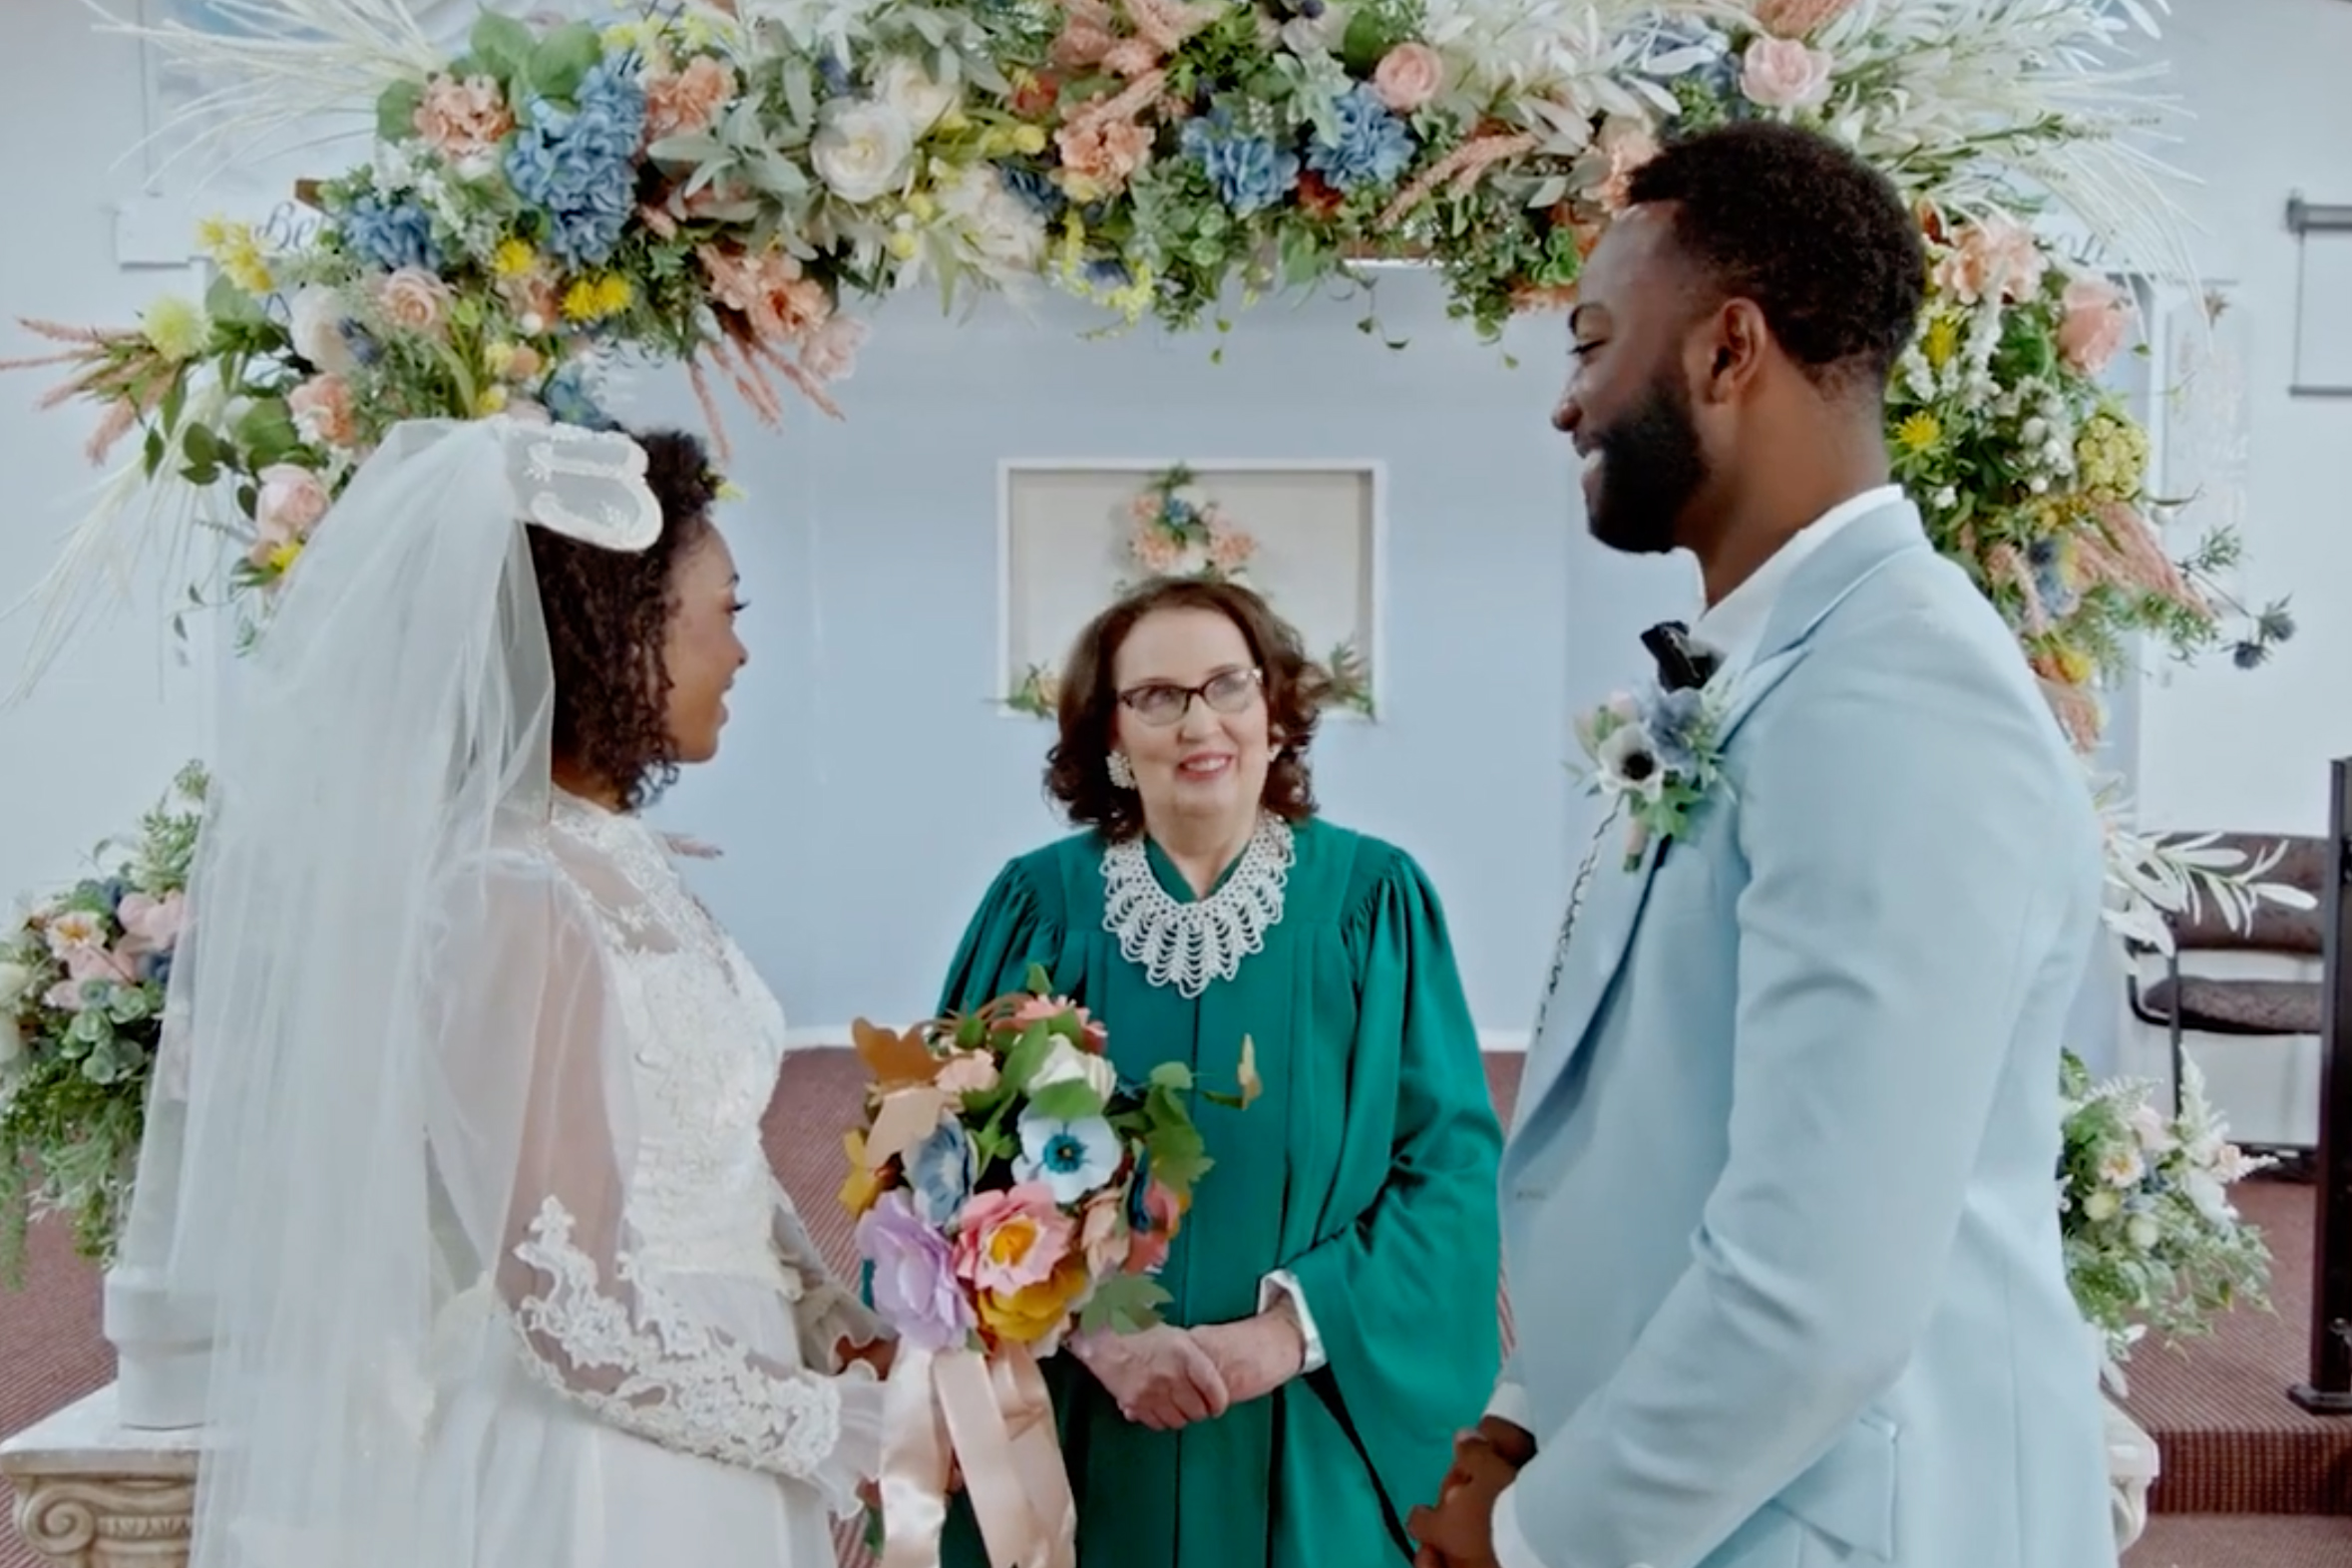 Phyllis from 'The Office' is back as an impromptu wedding planner in Joann's latest crafting video